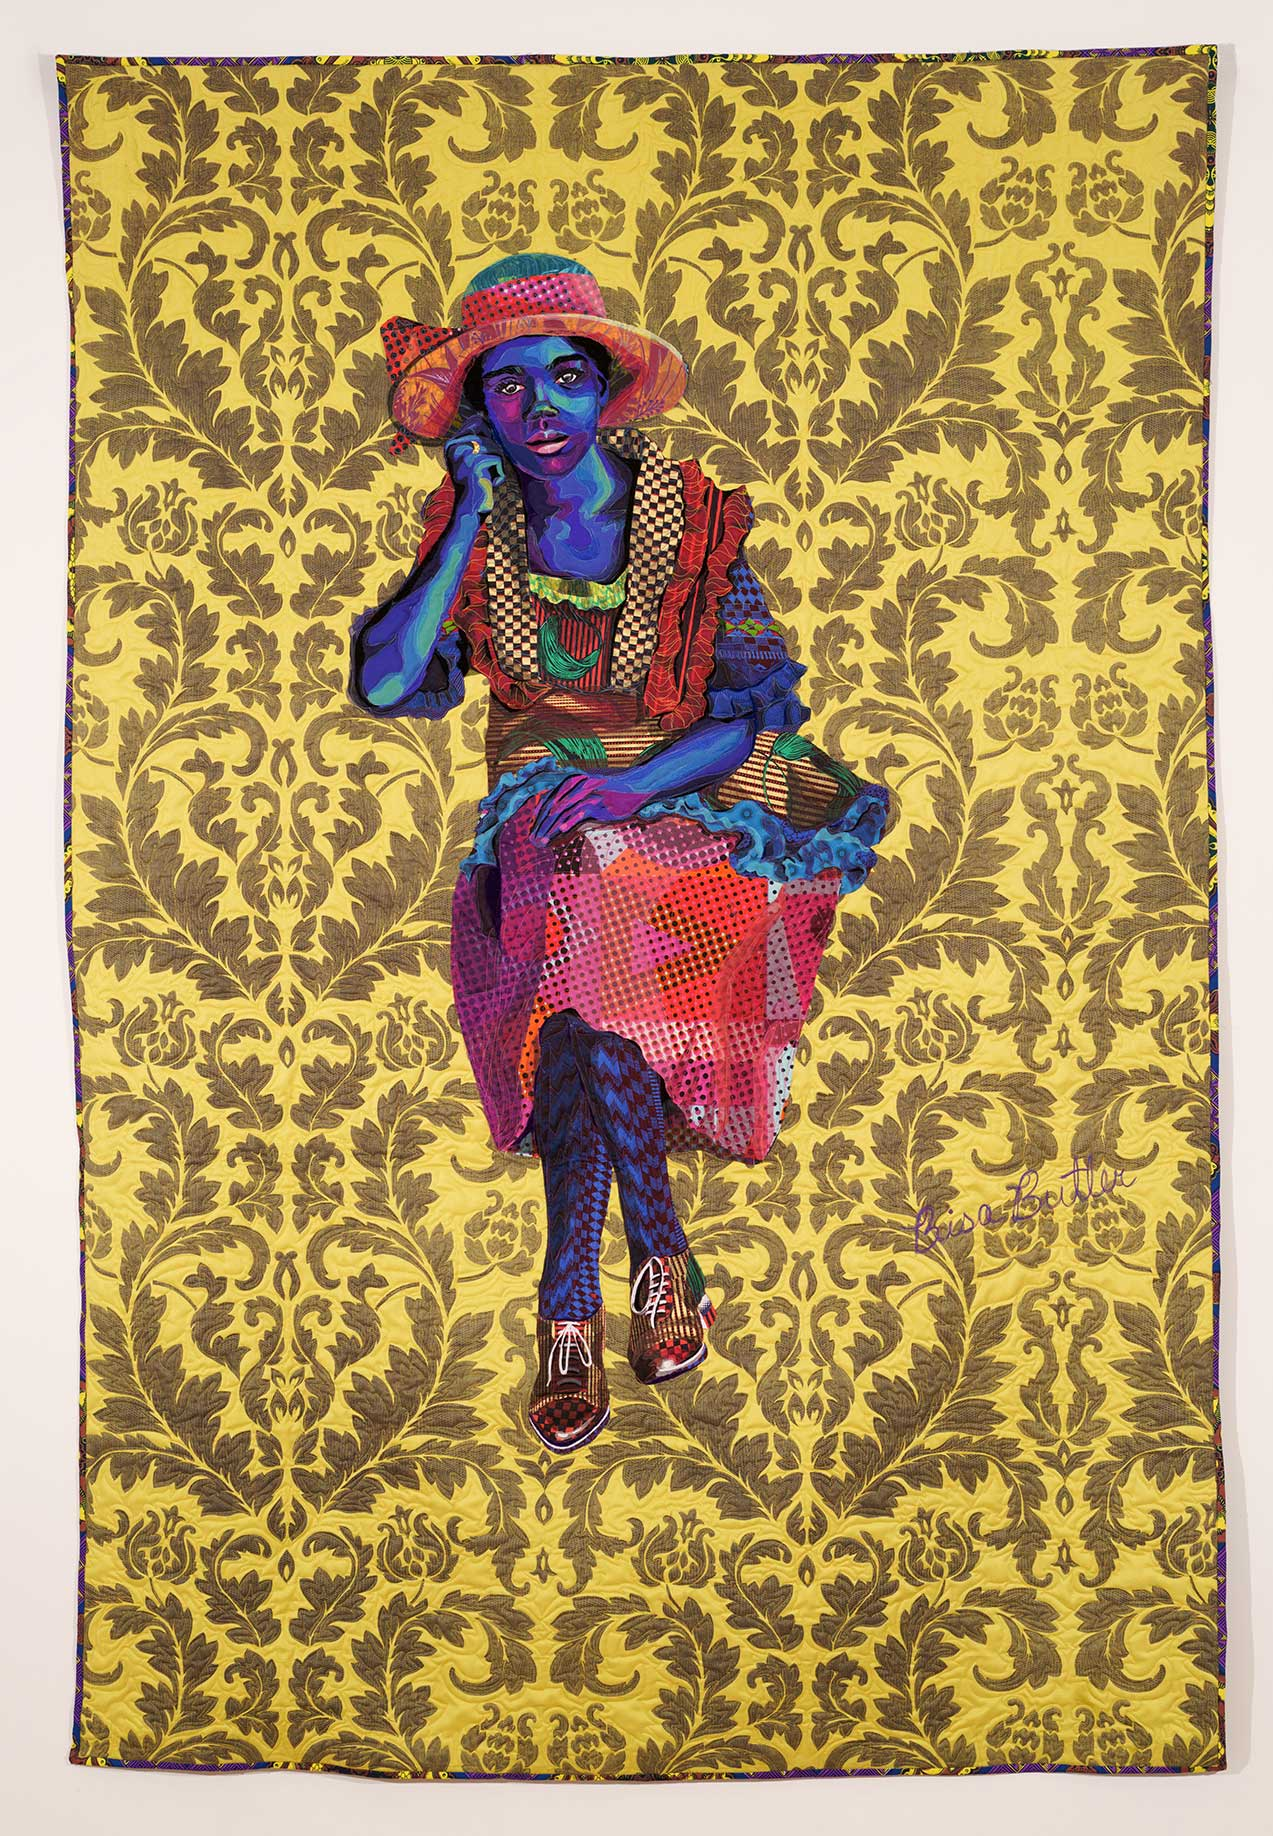 Quilt by fiber artist Bisa Butler, featuring a seated woman with her legs crossed on a background of yellow patterned fabric.